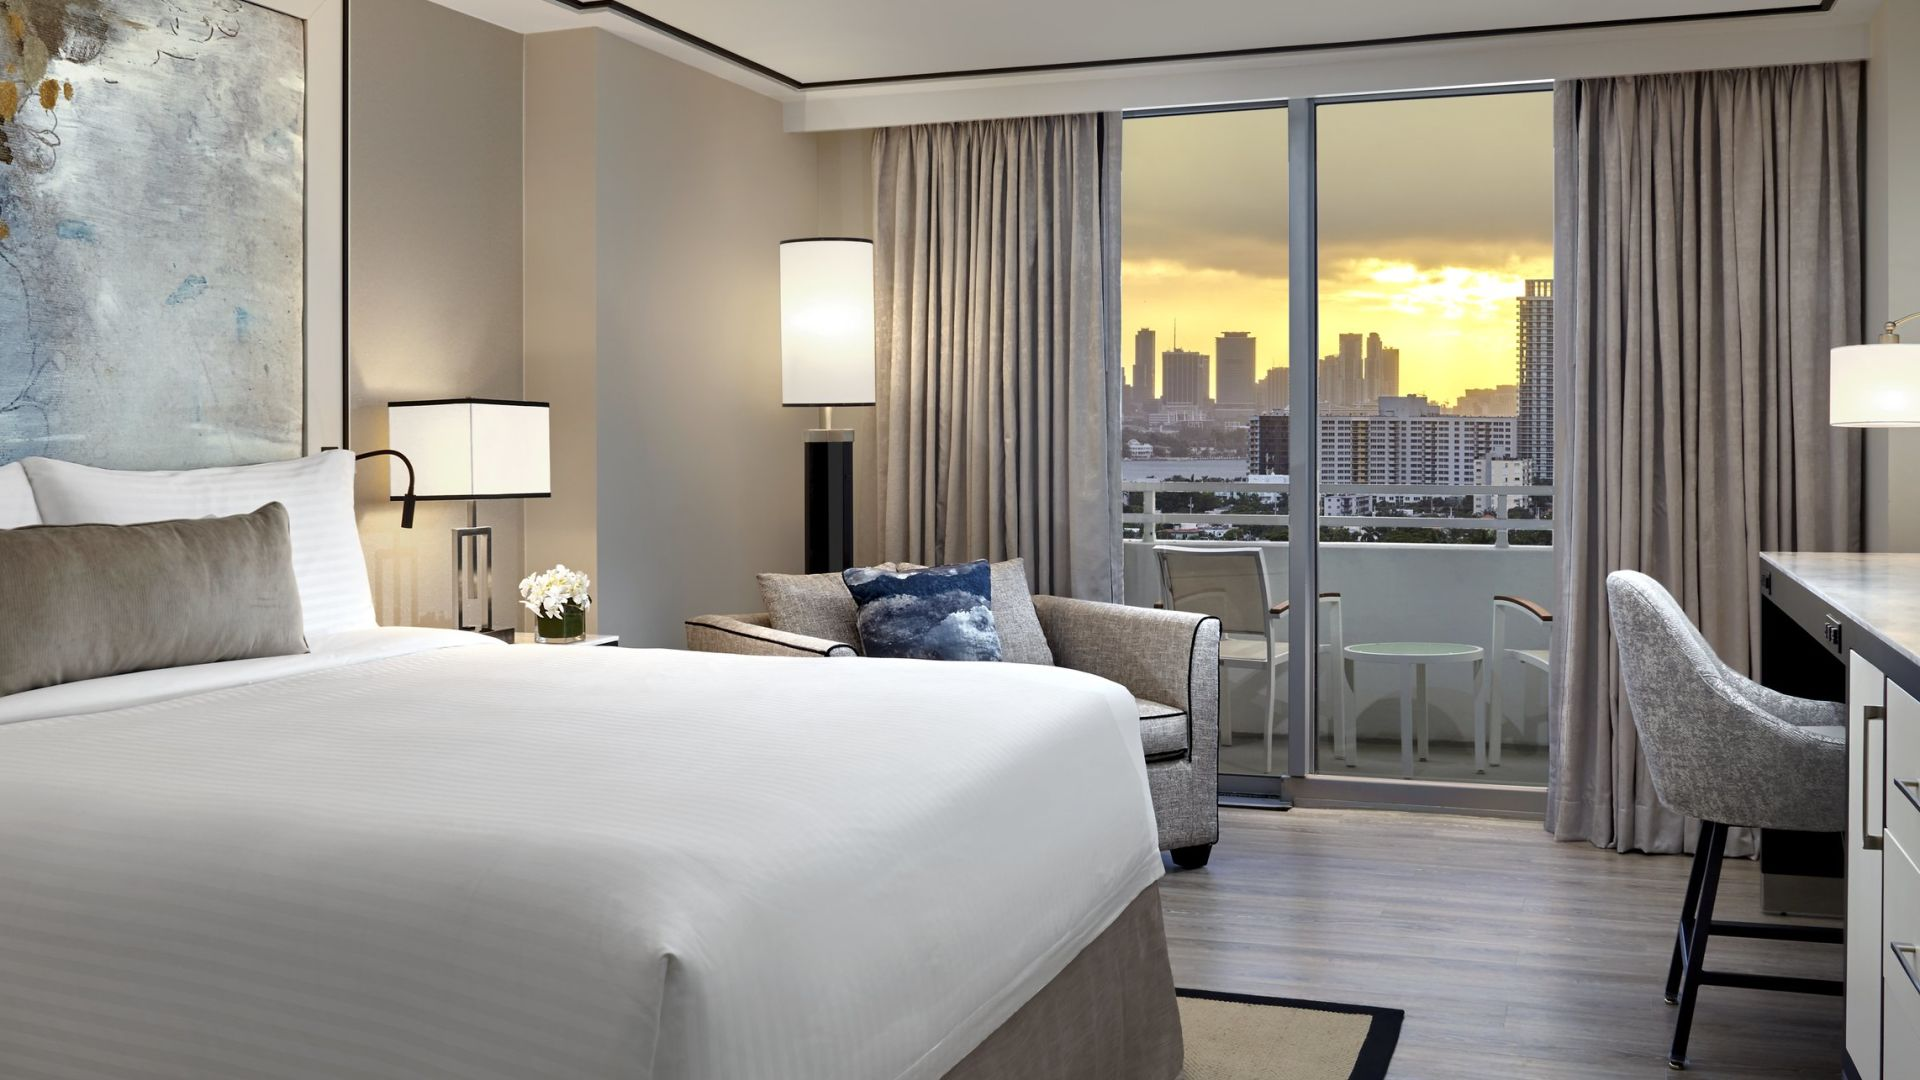 King-Bett und Skyline-Blick | Loews Miami Beach Hotel